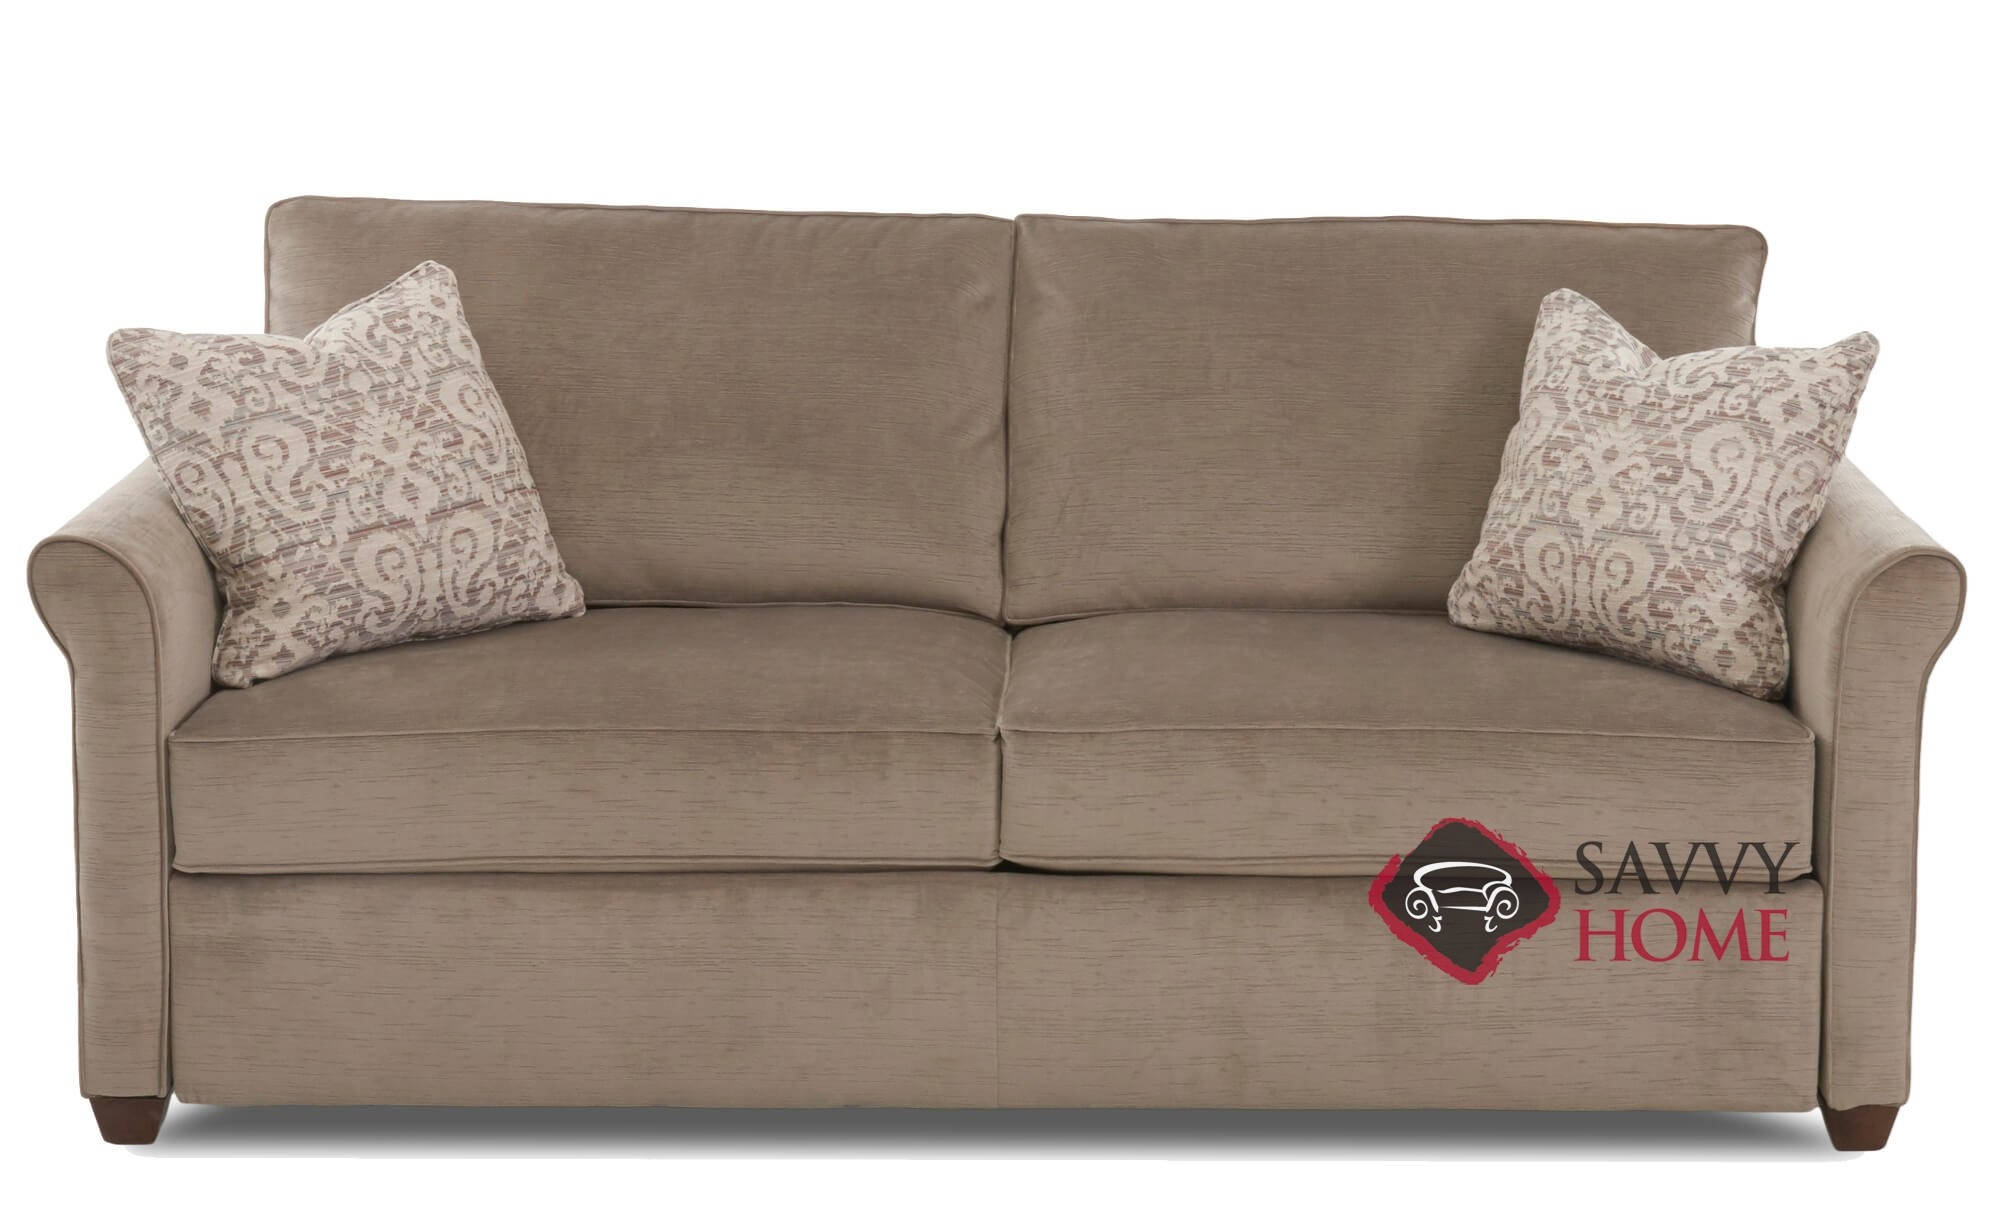 Fort Worth Fabric Sleeper Sofas Full By Savvy Is Fully